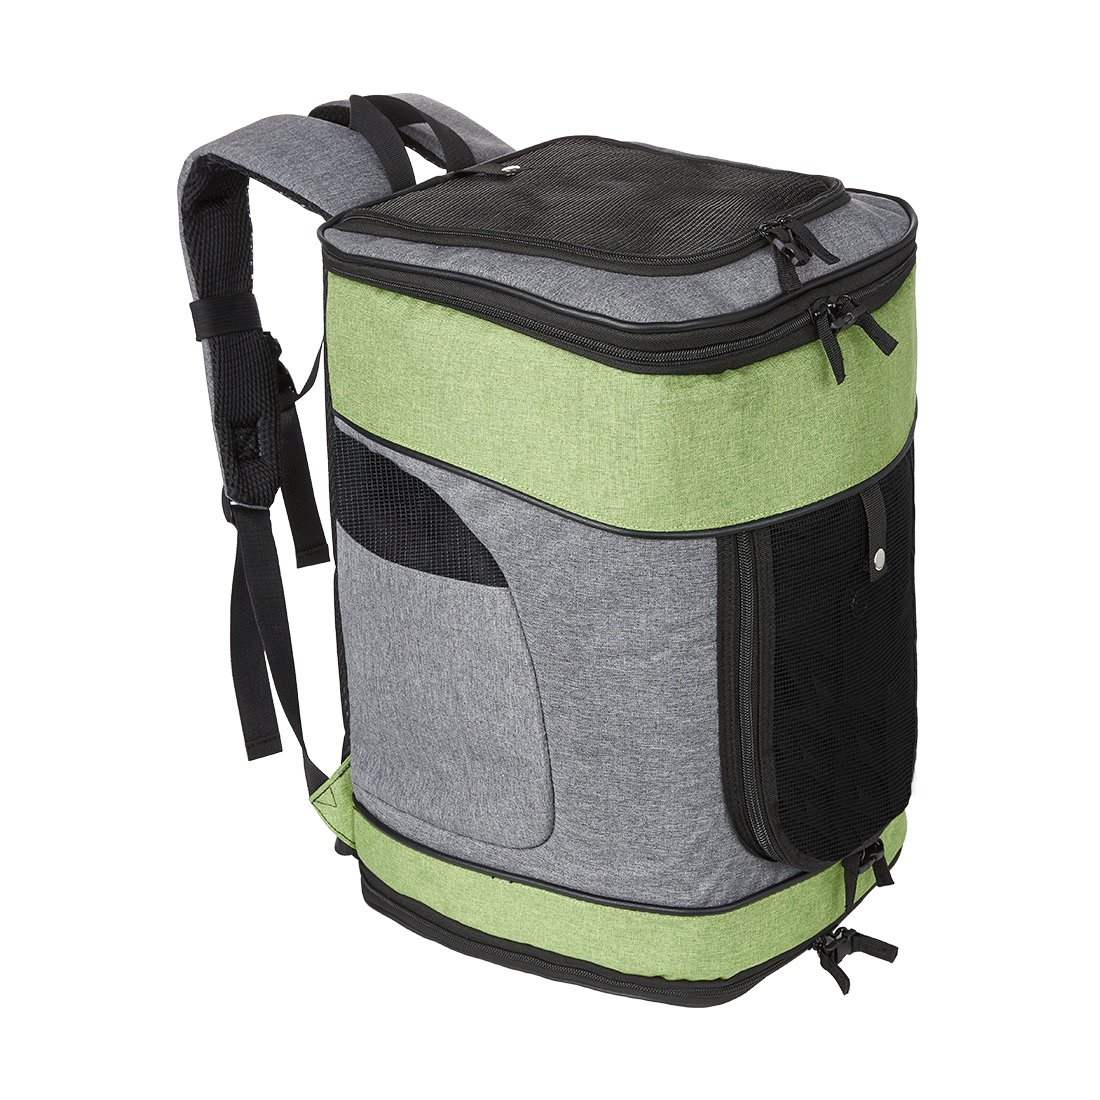 SERWALL Pet Carrier Backpack Small Dogs Cats bag Breathable Mesh Adjustable Padded Shoulder Outdoor Travel Walk, Hiking, Cycling & Fun Your Pet (Green)